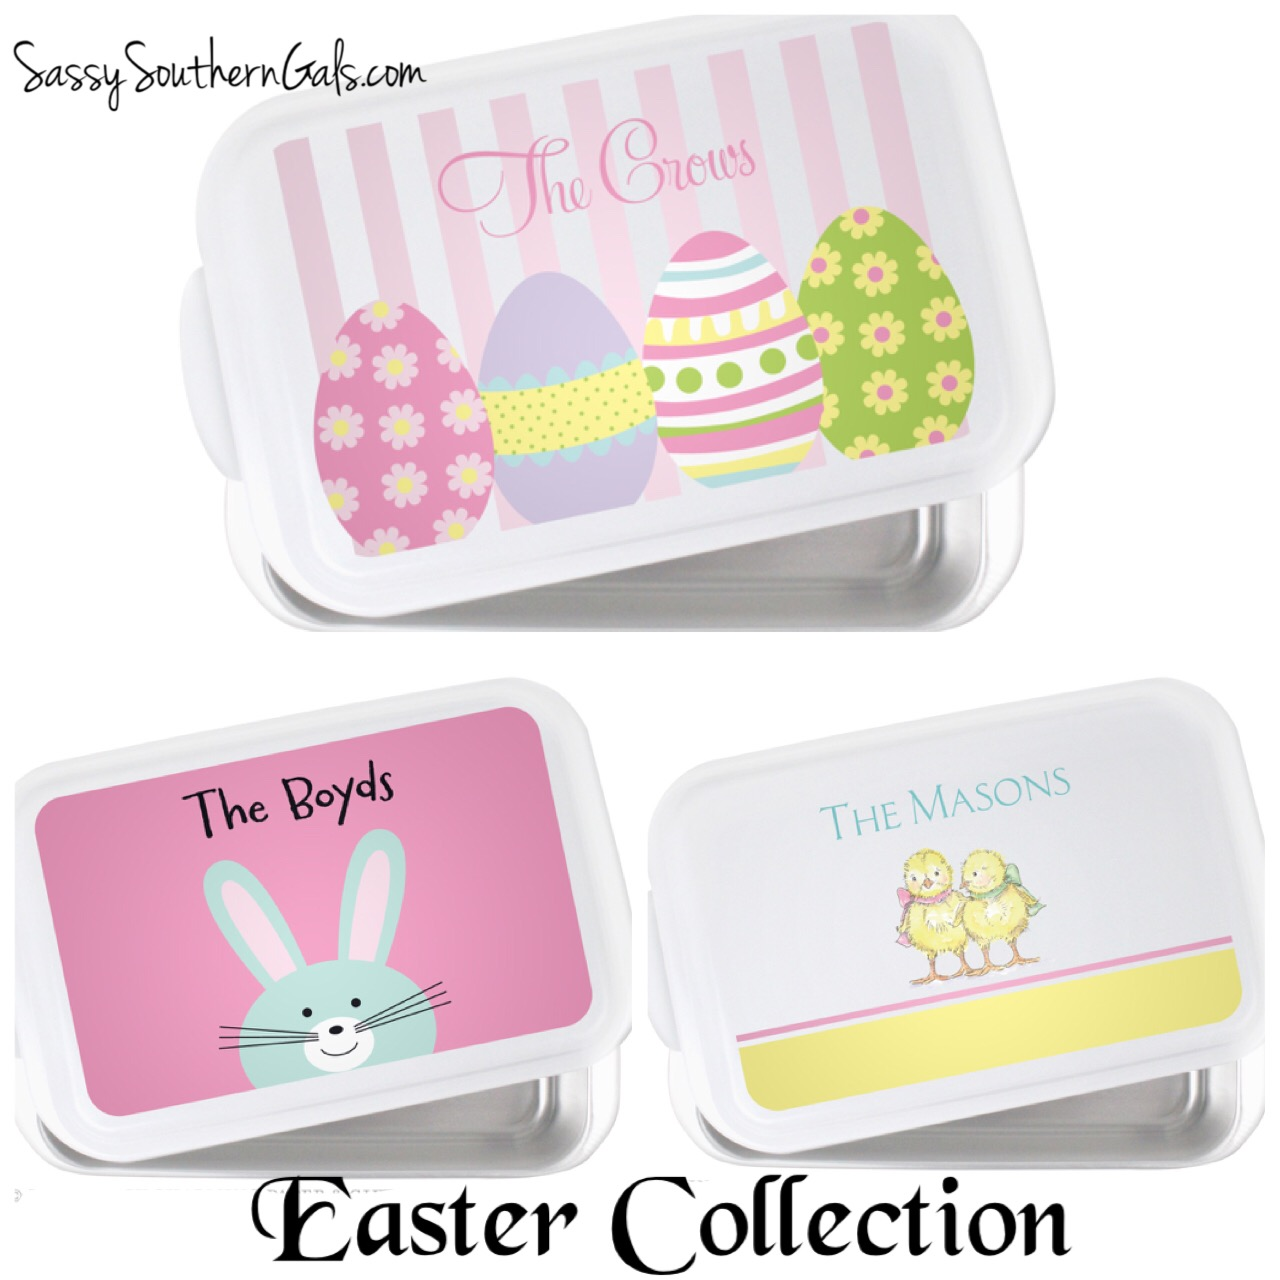 Easter Personalized Casserole Dish Monogrammed Casserole